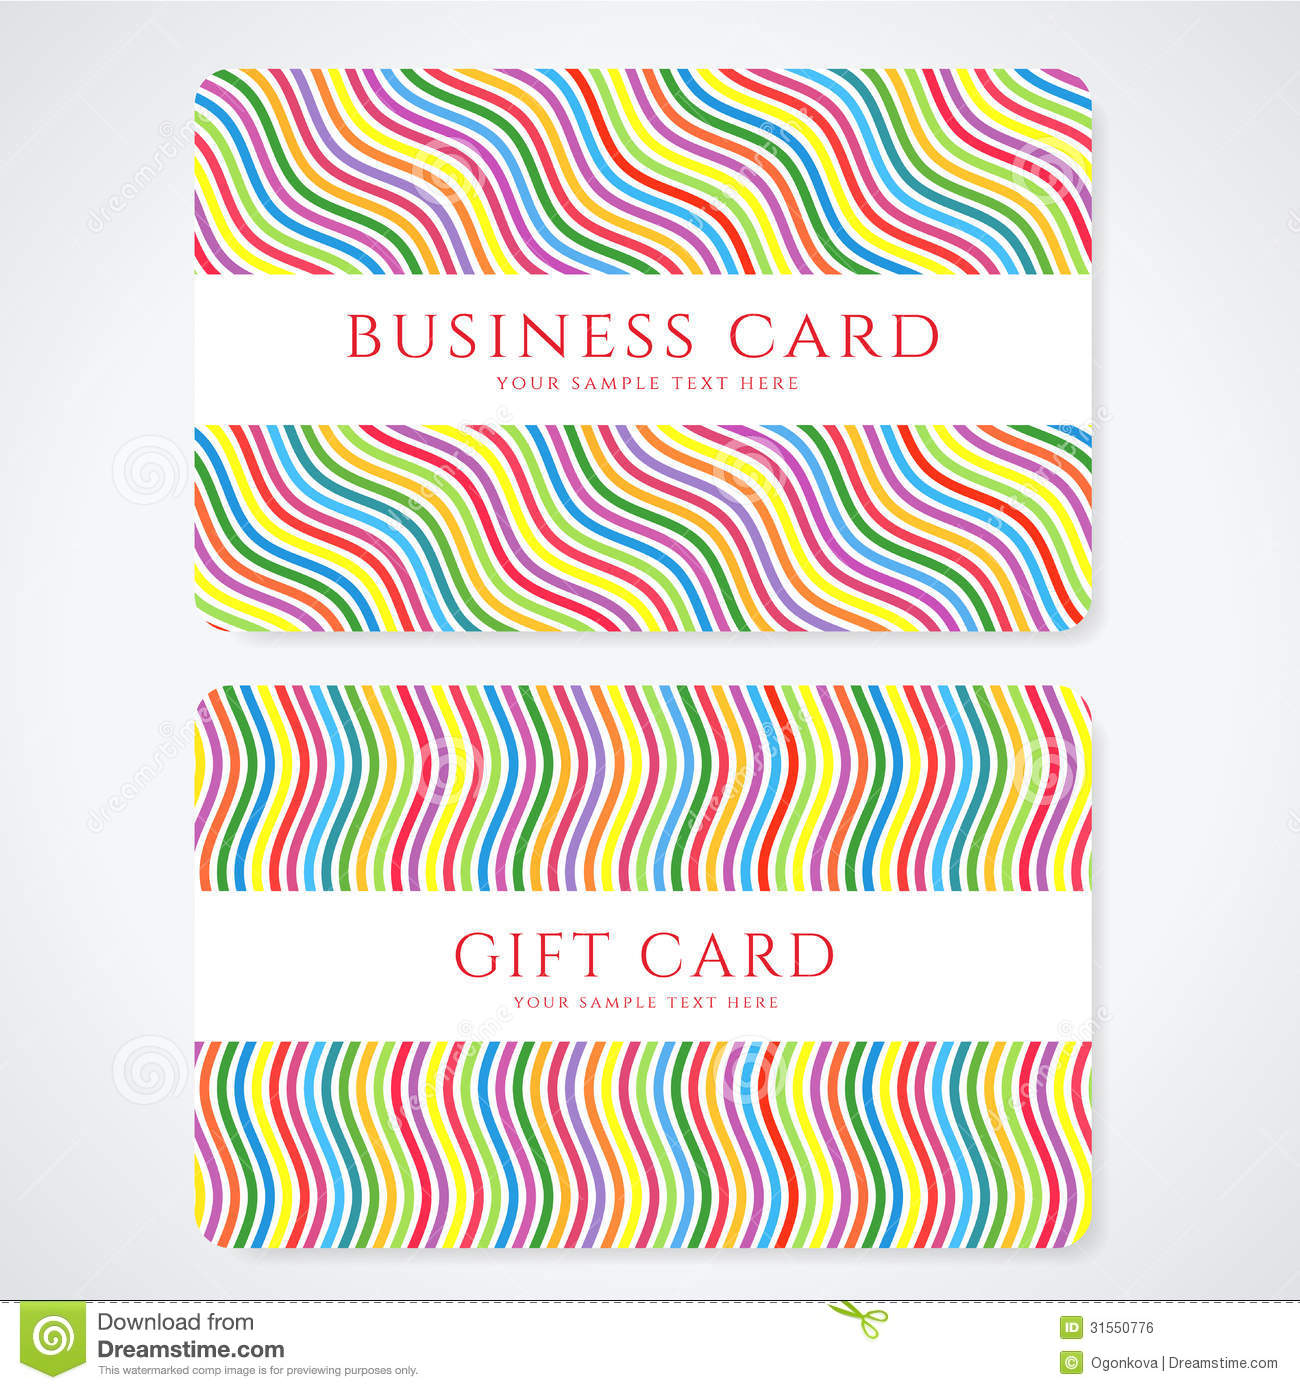 Colorful gift card discount card business card royalty for Gift card for business